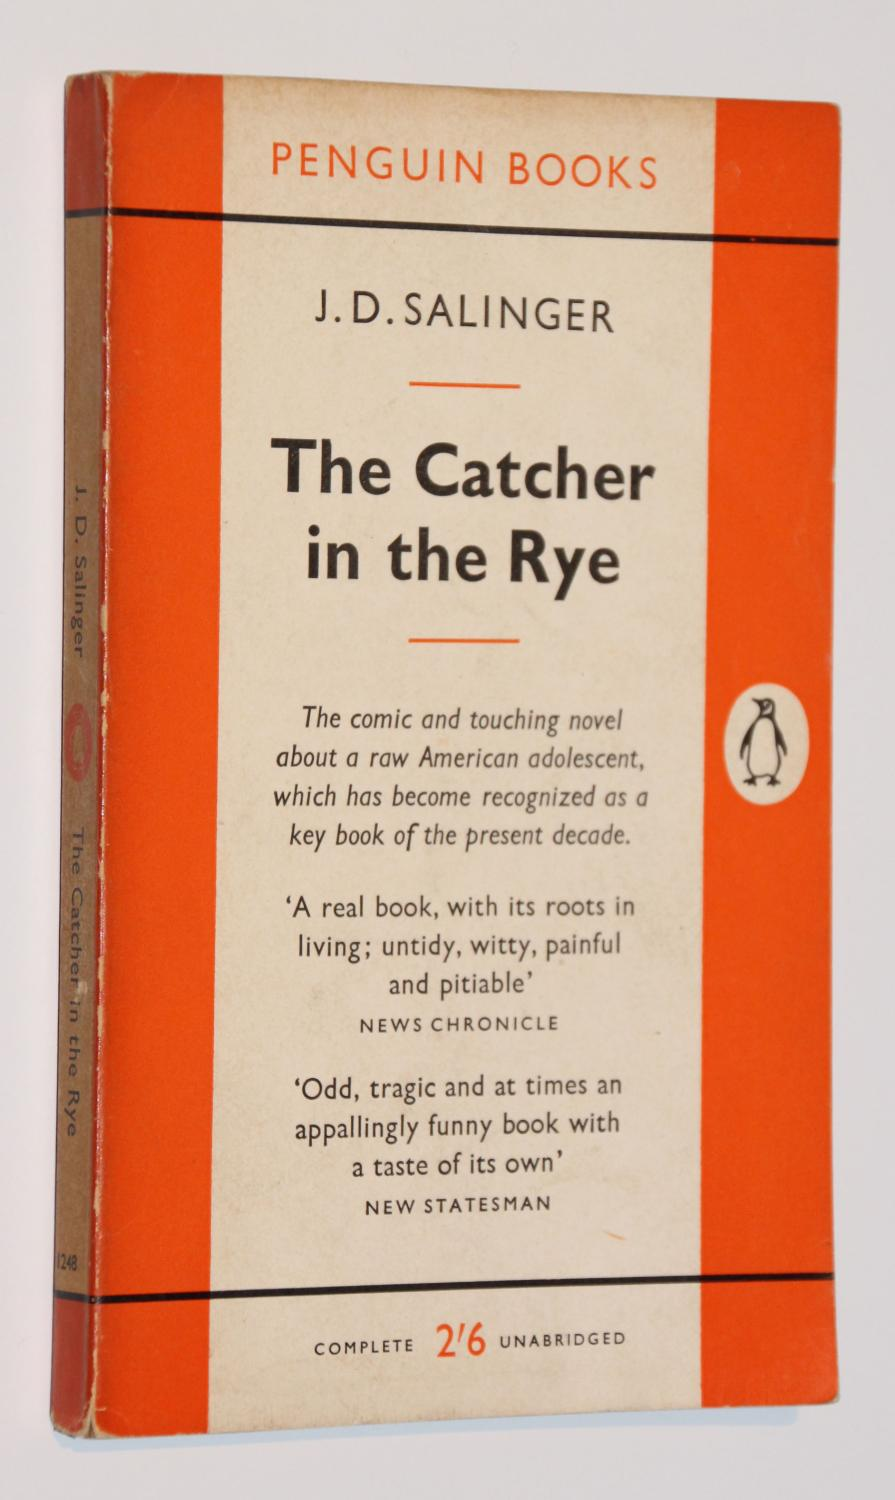 catcher in the rye argument The catcher in the rye is a story by j d salinger, partially published in serial  form in  in their biography of salinger, david shields and shane salerno  argue that: the catcher in the rye can best be understood as a disguised war  novel.